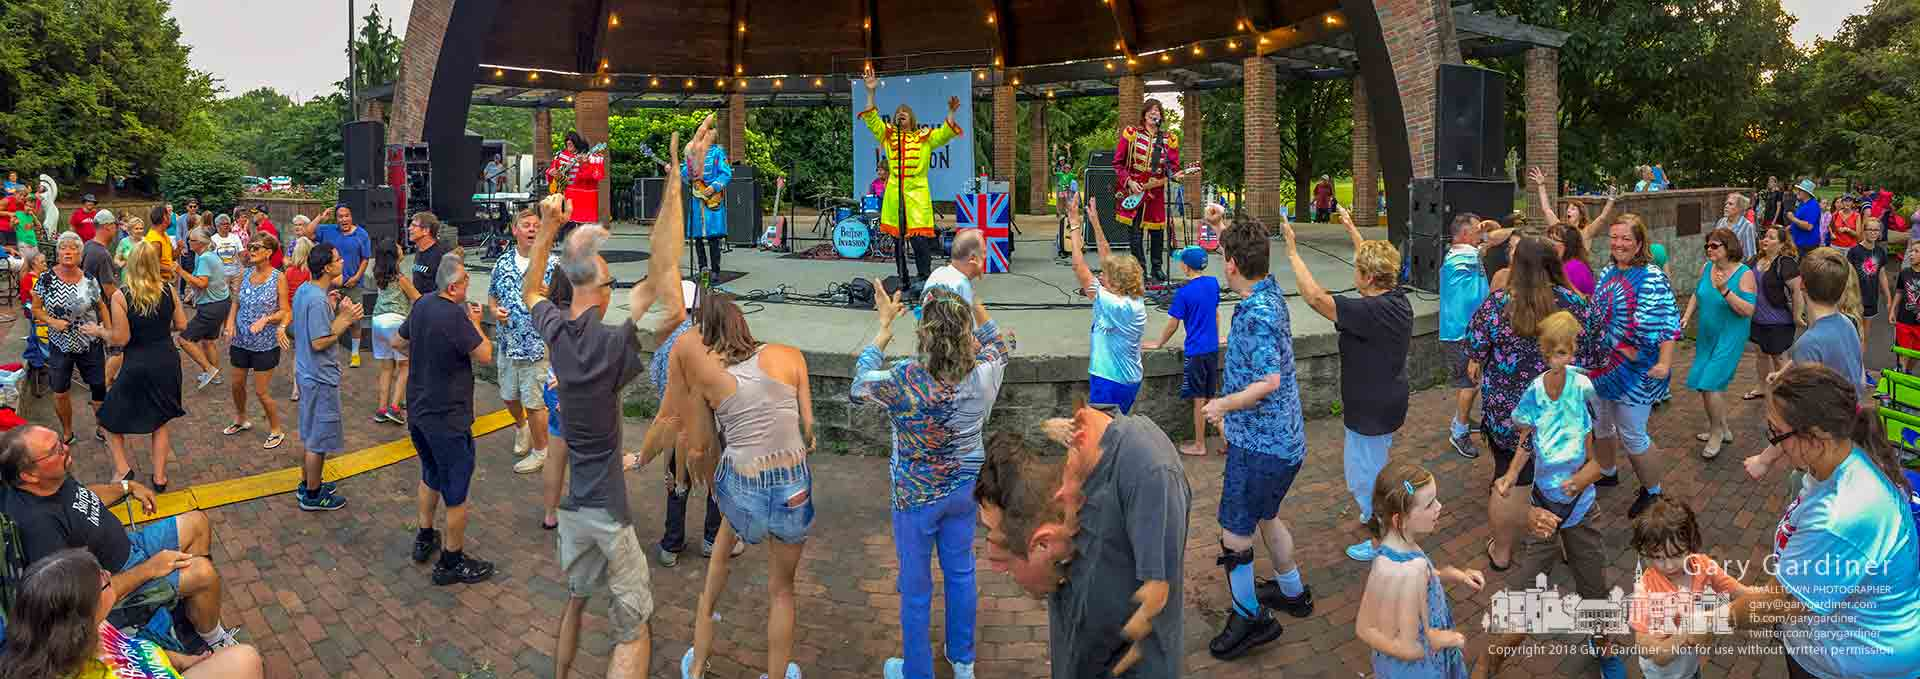 """Part of the overflow crowd twists and shouts to """"Twist and Shout,"""" the last song played by The British Invasion at their concert at the Alum Creek Amphitheater. My Final Photo for July 15, 2018."""